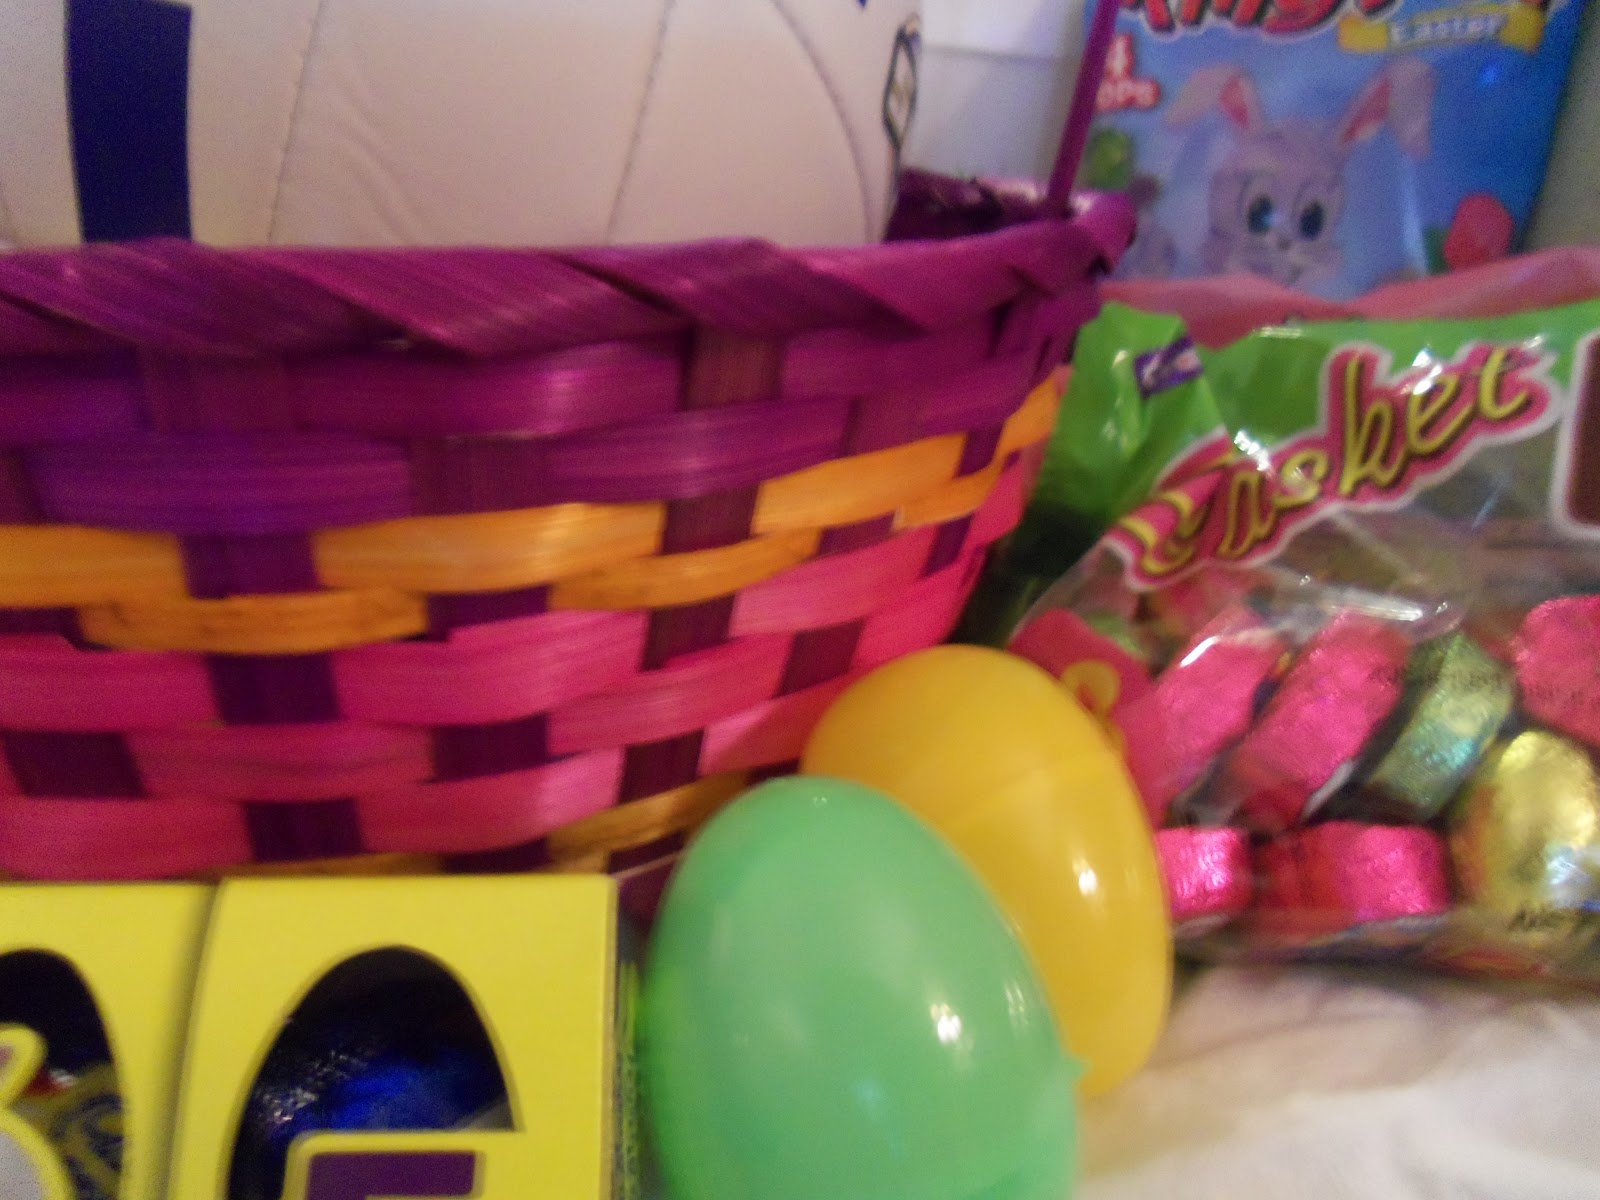 Cheap easter basket ideas for large families lille punkin like most holidays easter can be a drain on the budget by the time we buy new baby easter clothes and make sure the rest of the kids have haircuts negle Choice Image